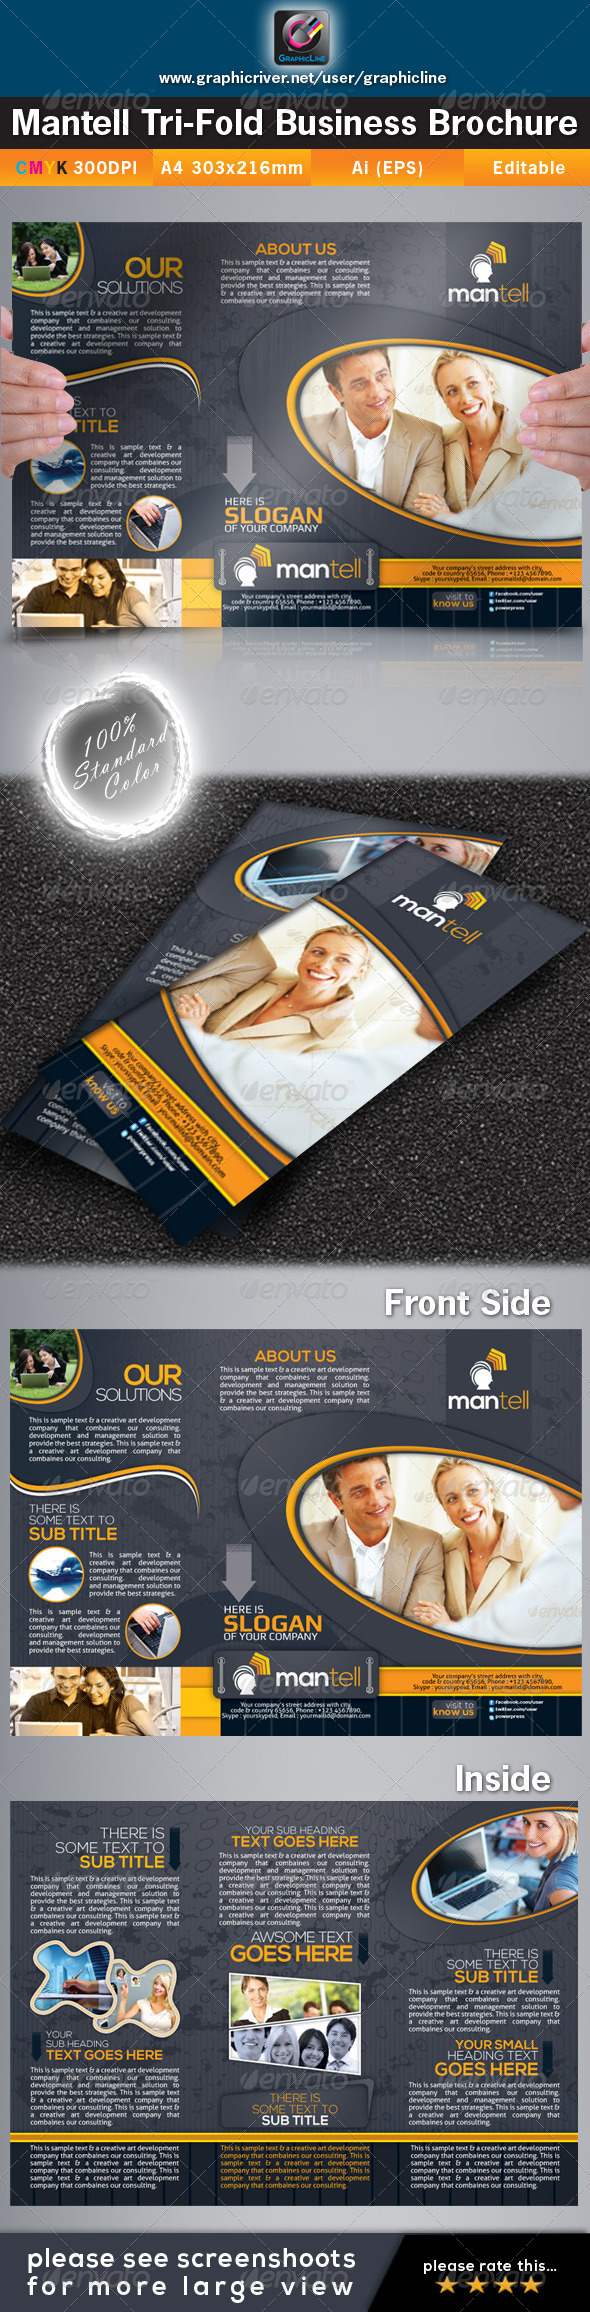 GraphicRiver Mantell Tri-fold Corporate Business Brochure 4462847